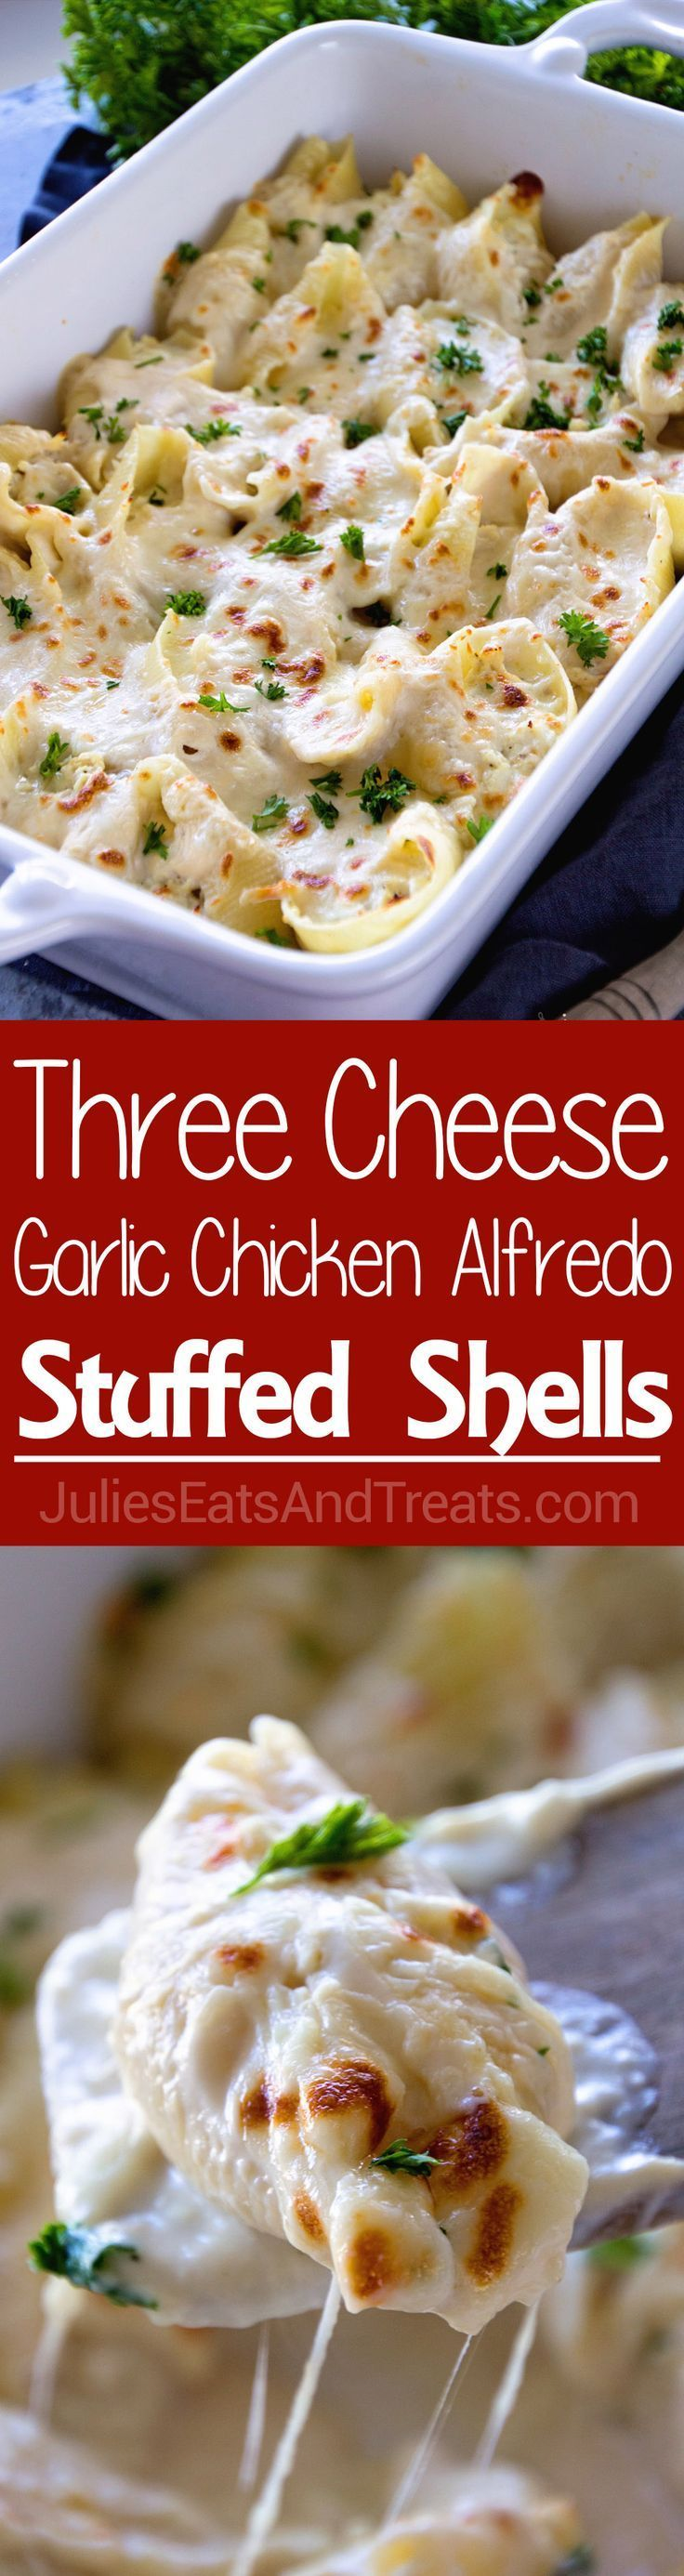 Chicken Alfredo Stuffed Shells Recipe ~ Jumbo Pasta Shells Stuffed with Three Kinds of Cheese and Topped with Creamy Alfredo Sauce! Perfect for a Quick, Easy Dinner or Lunch! (creamy garlic pasta easy)